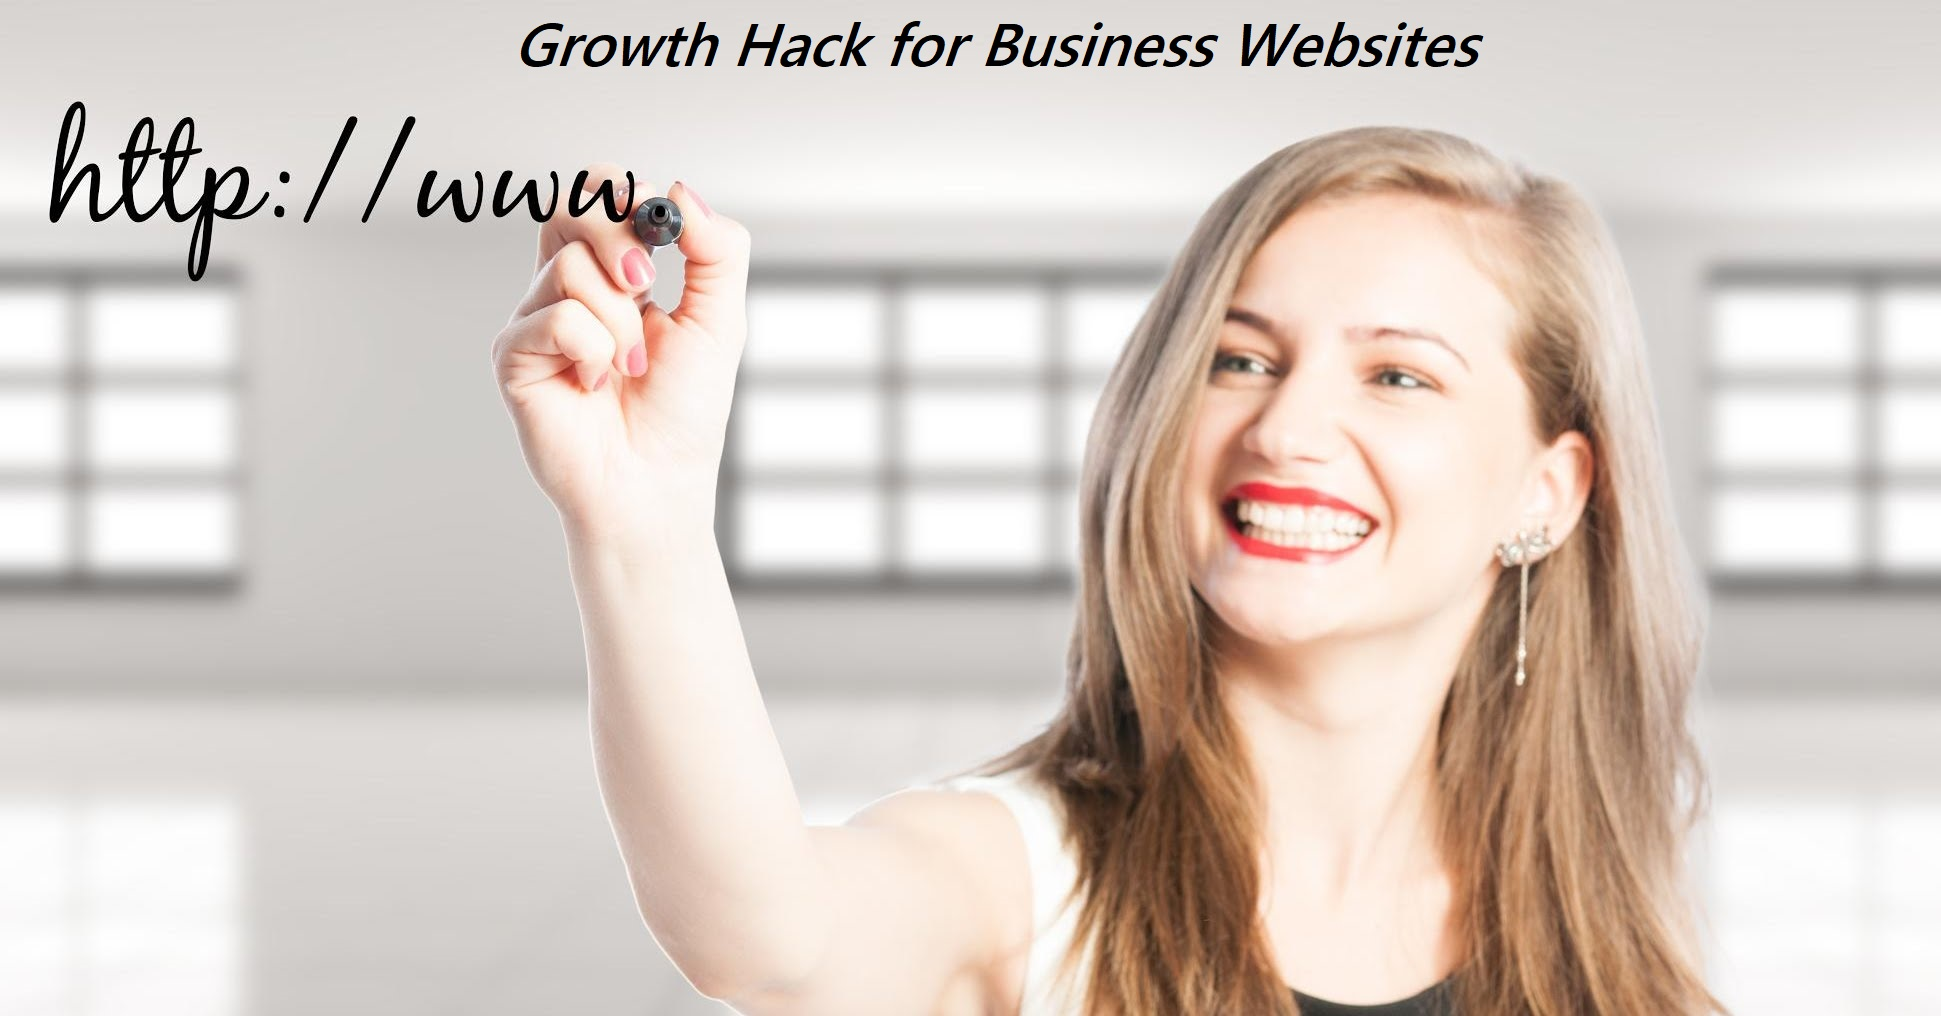 Growth Hack for Business Websites